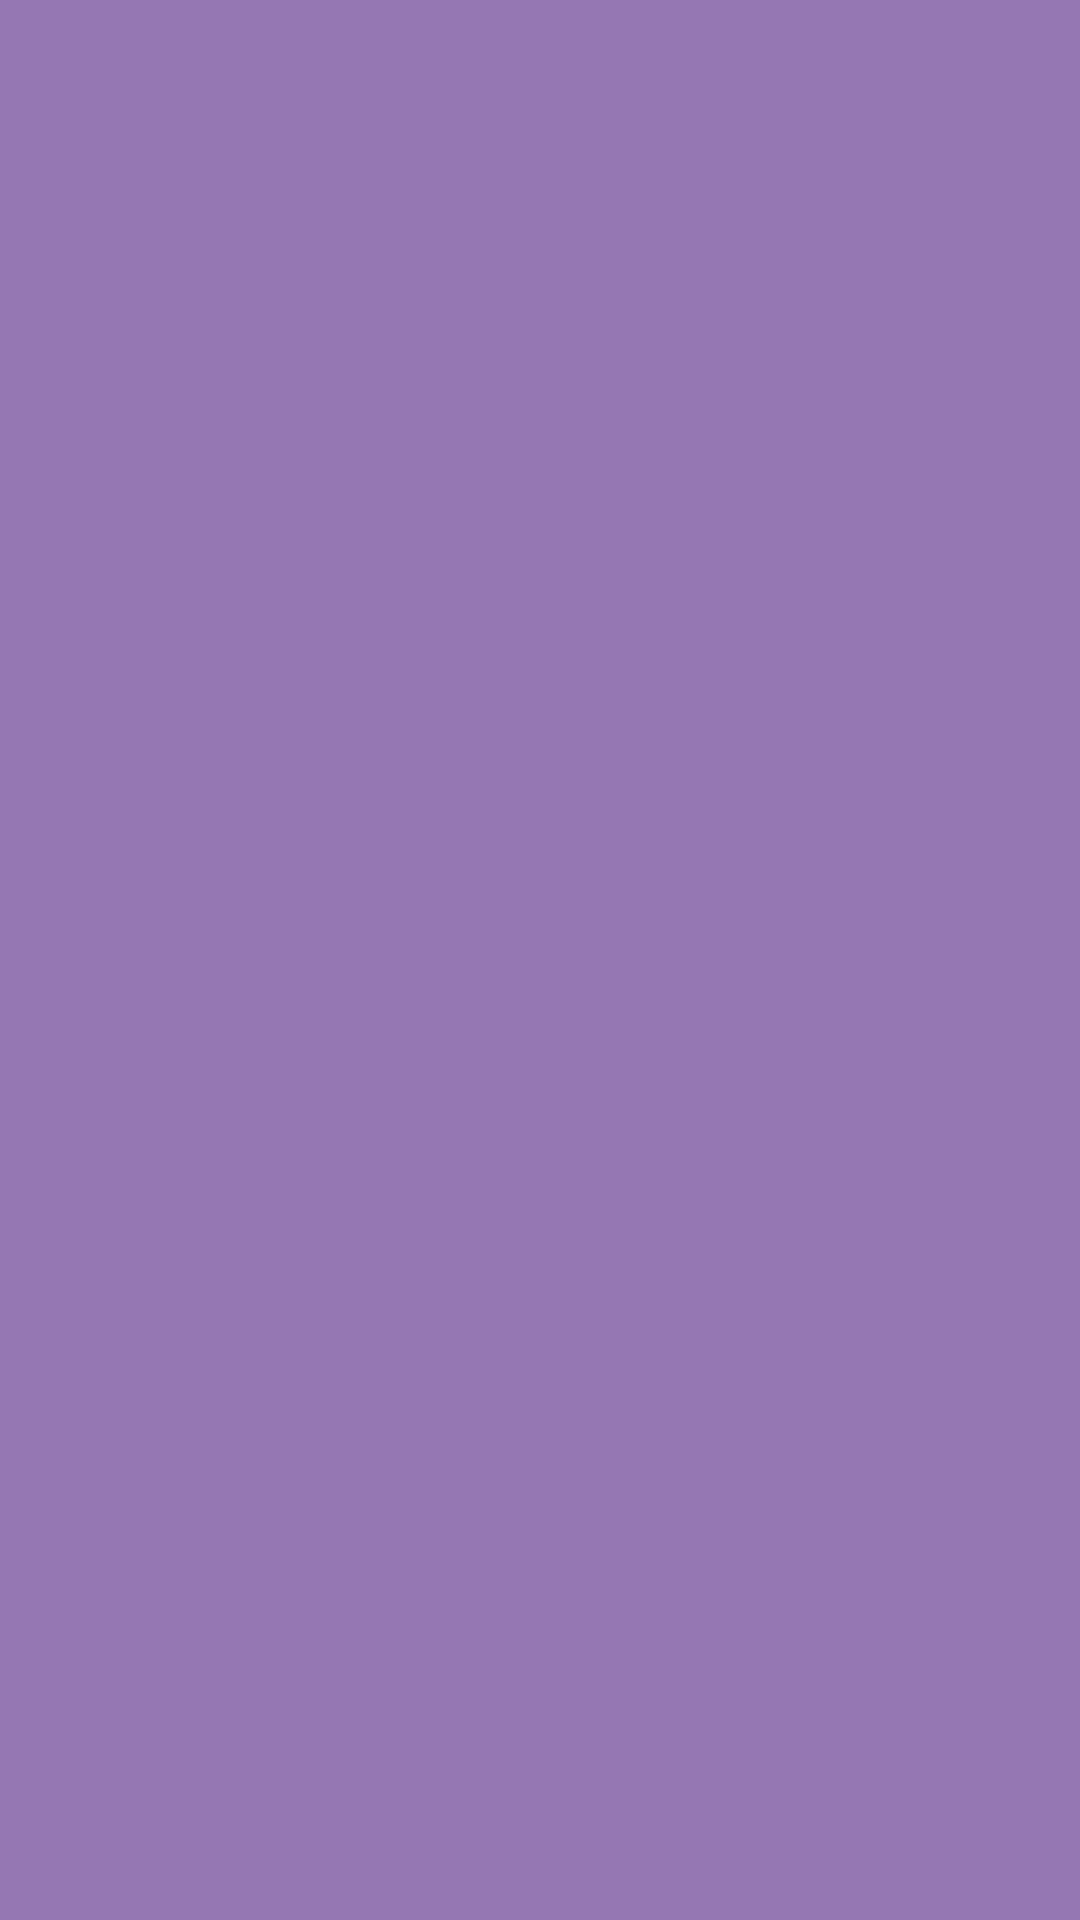 1080x1920 Purple Mountain Majesty Solid Color Background